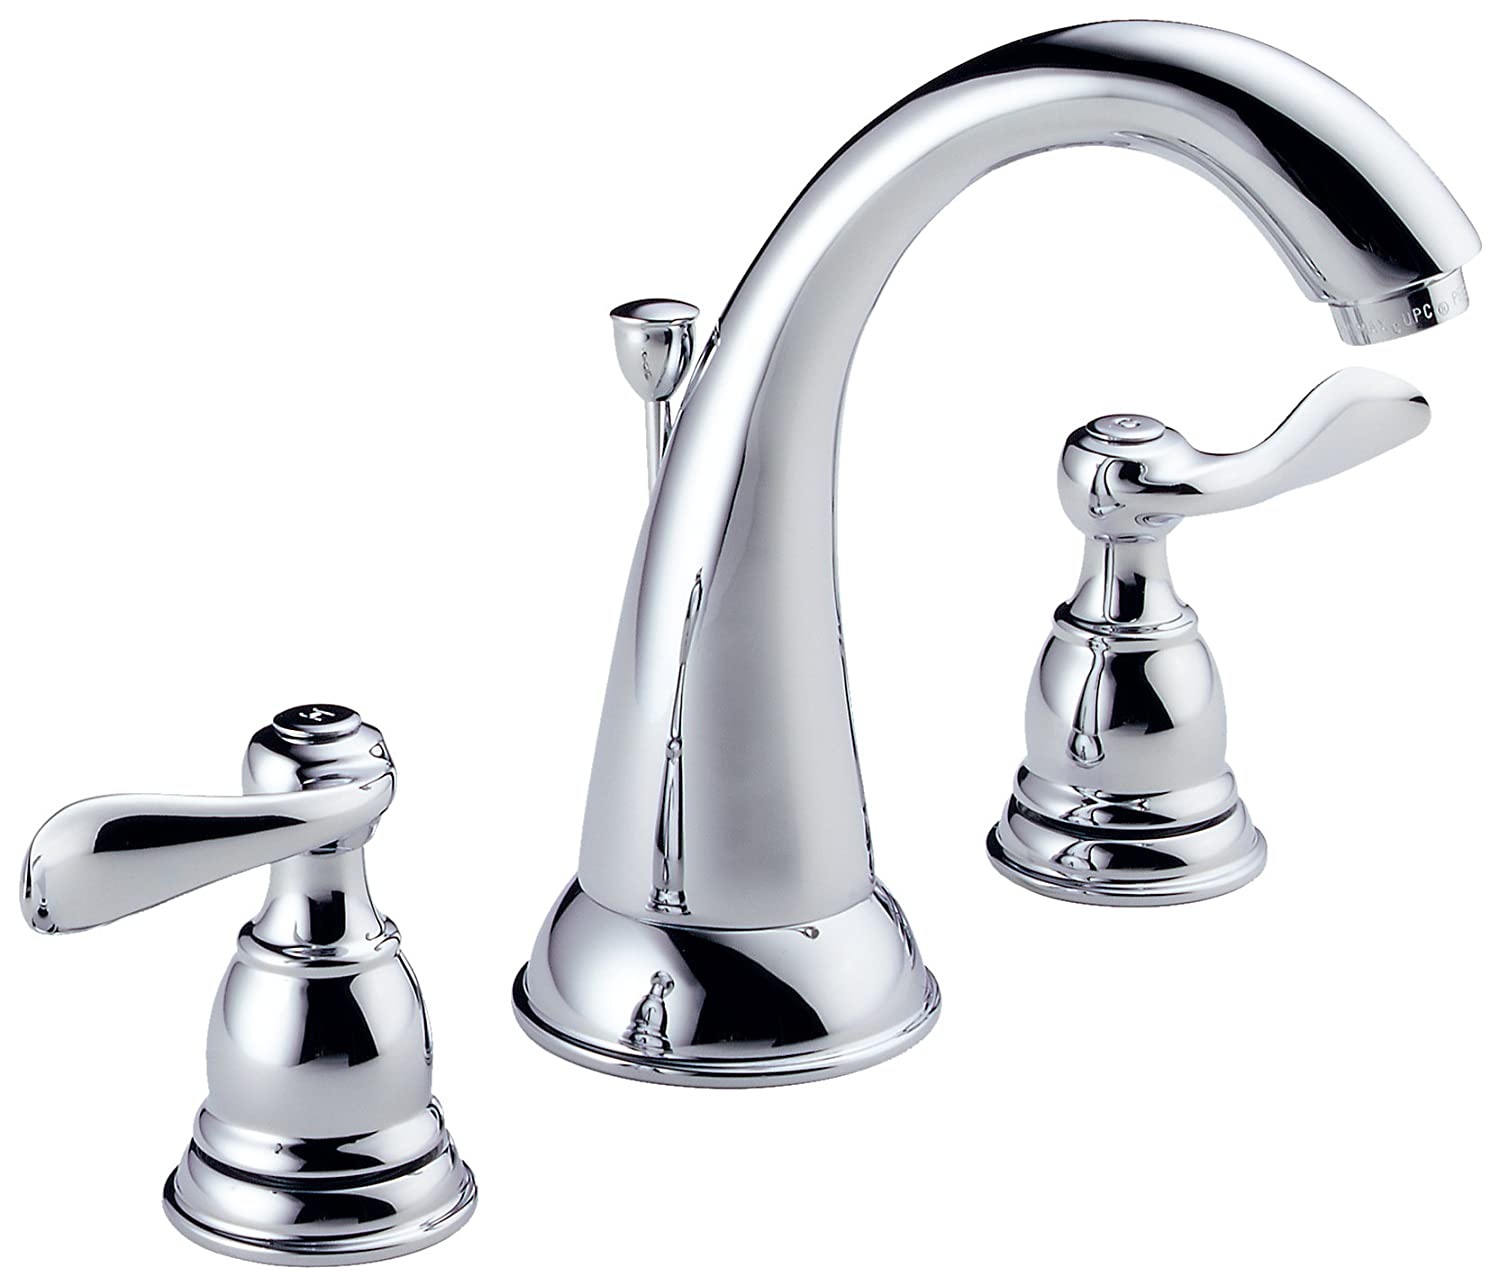 bathroom com hand showers and water delta faucets technology faucet kitchen facuets